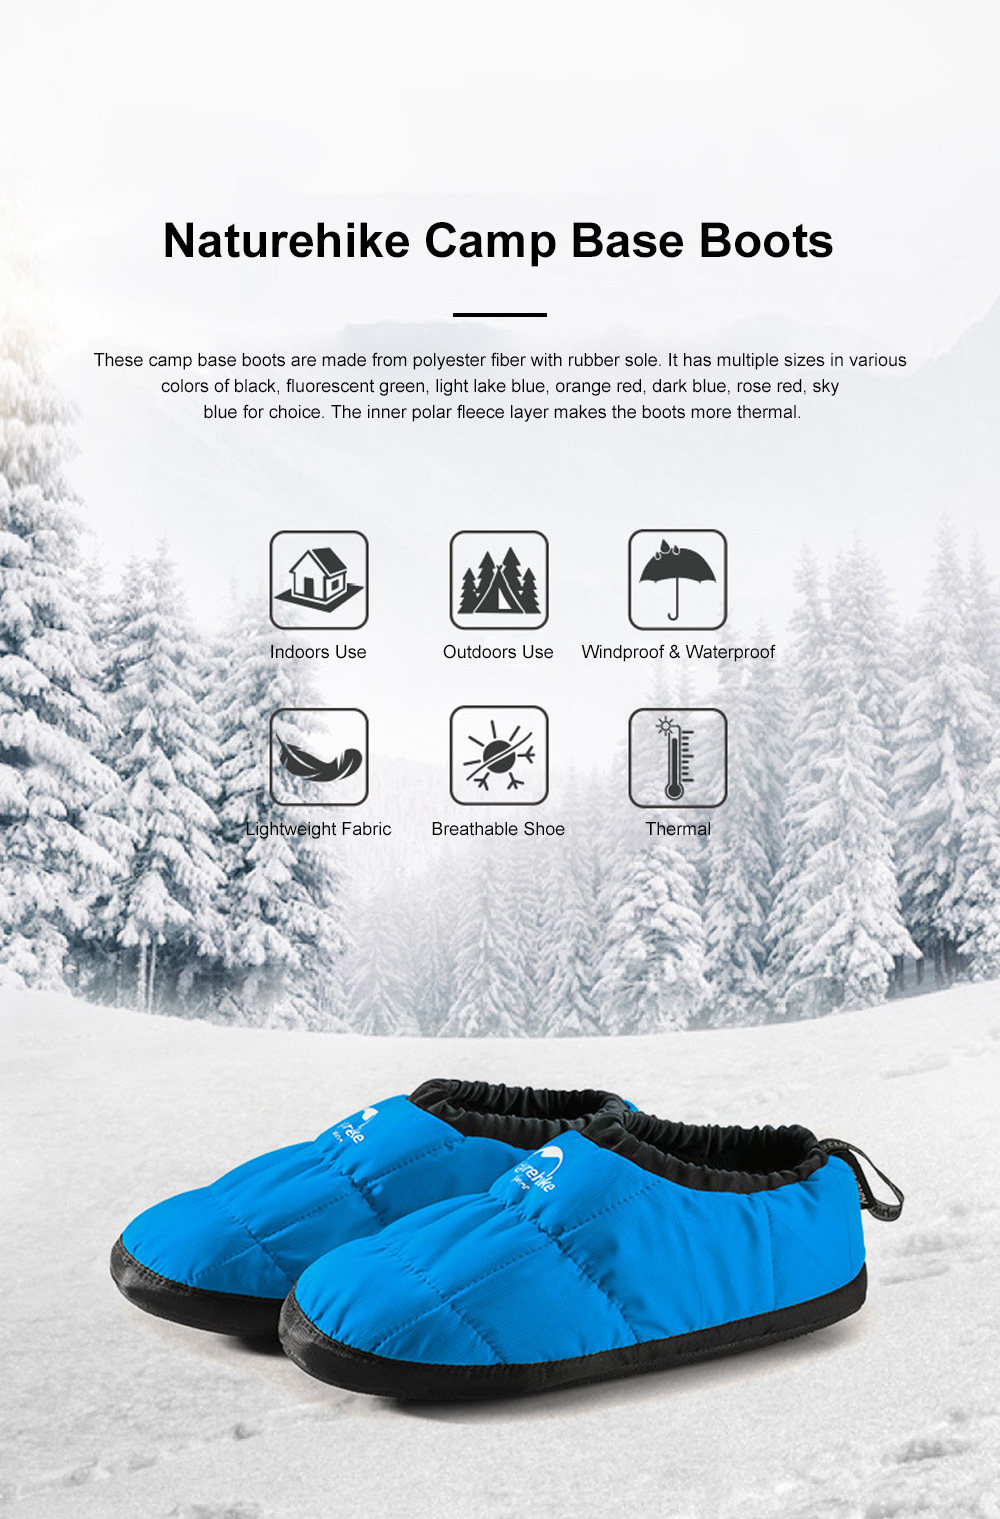 Naturehike Camp Base Boots for Home Outdoors Use Thermal Breathable Camp Shoes Waterproof Lightweight Fabric Camp Shoes 0